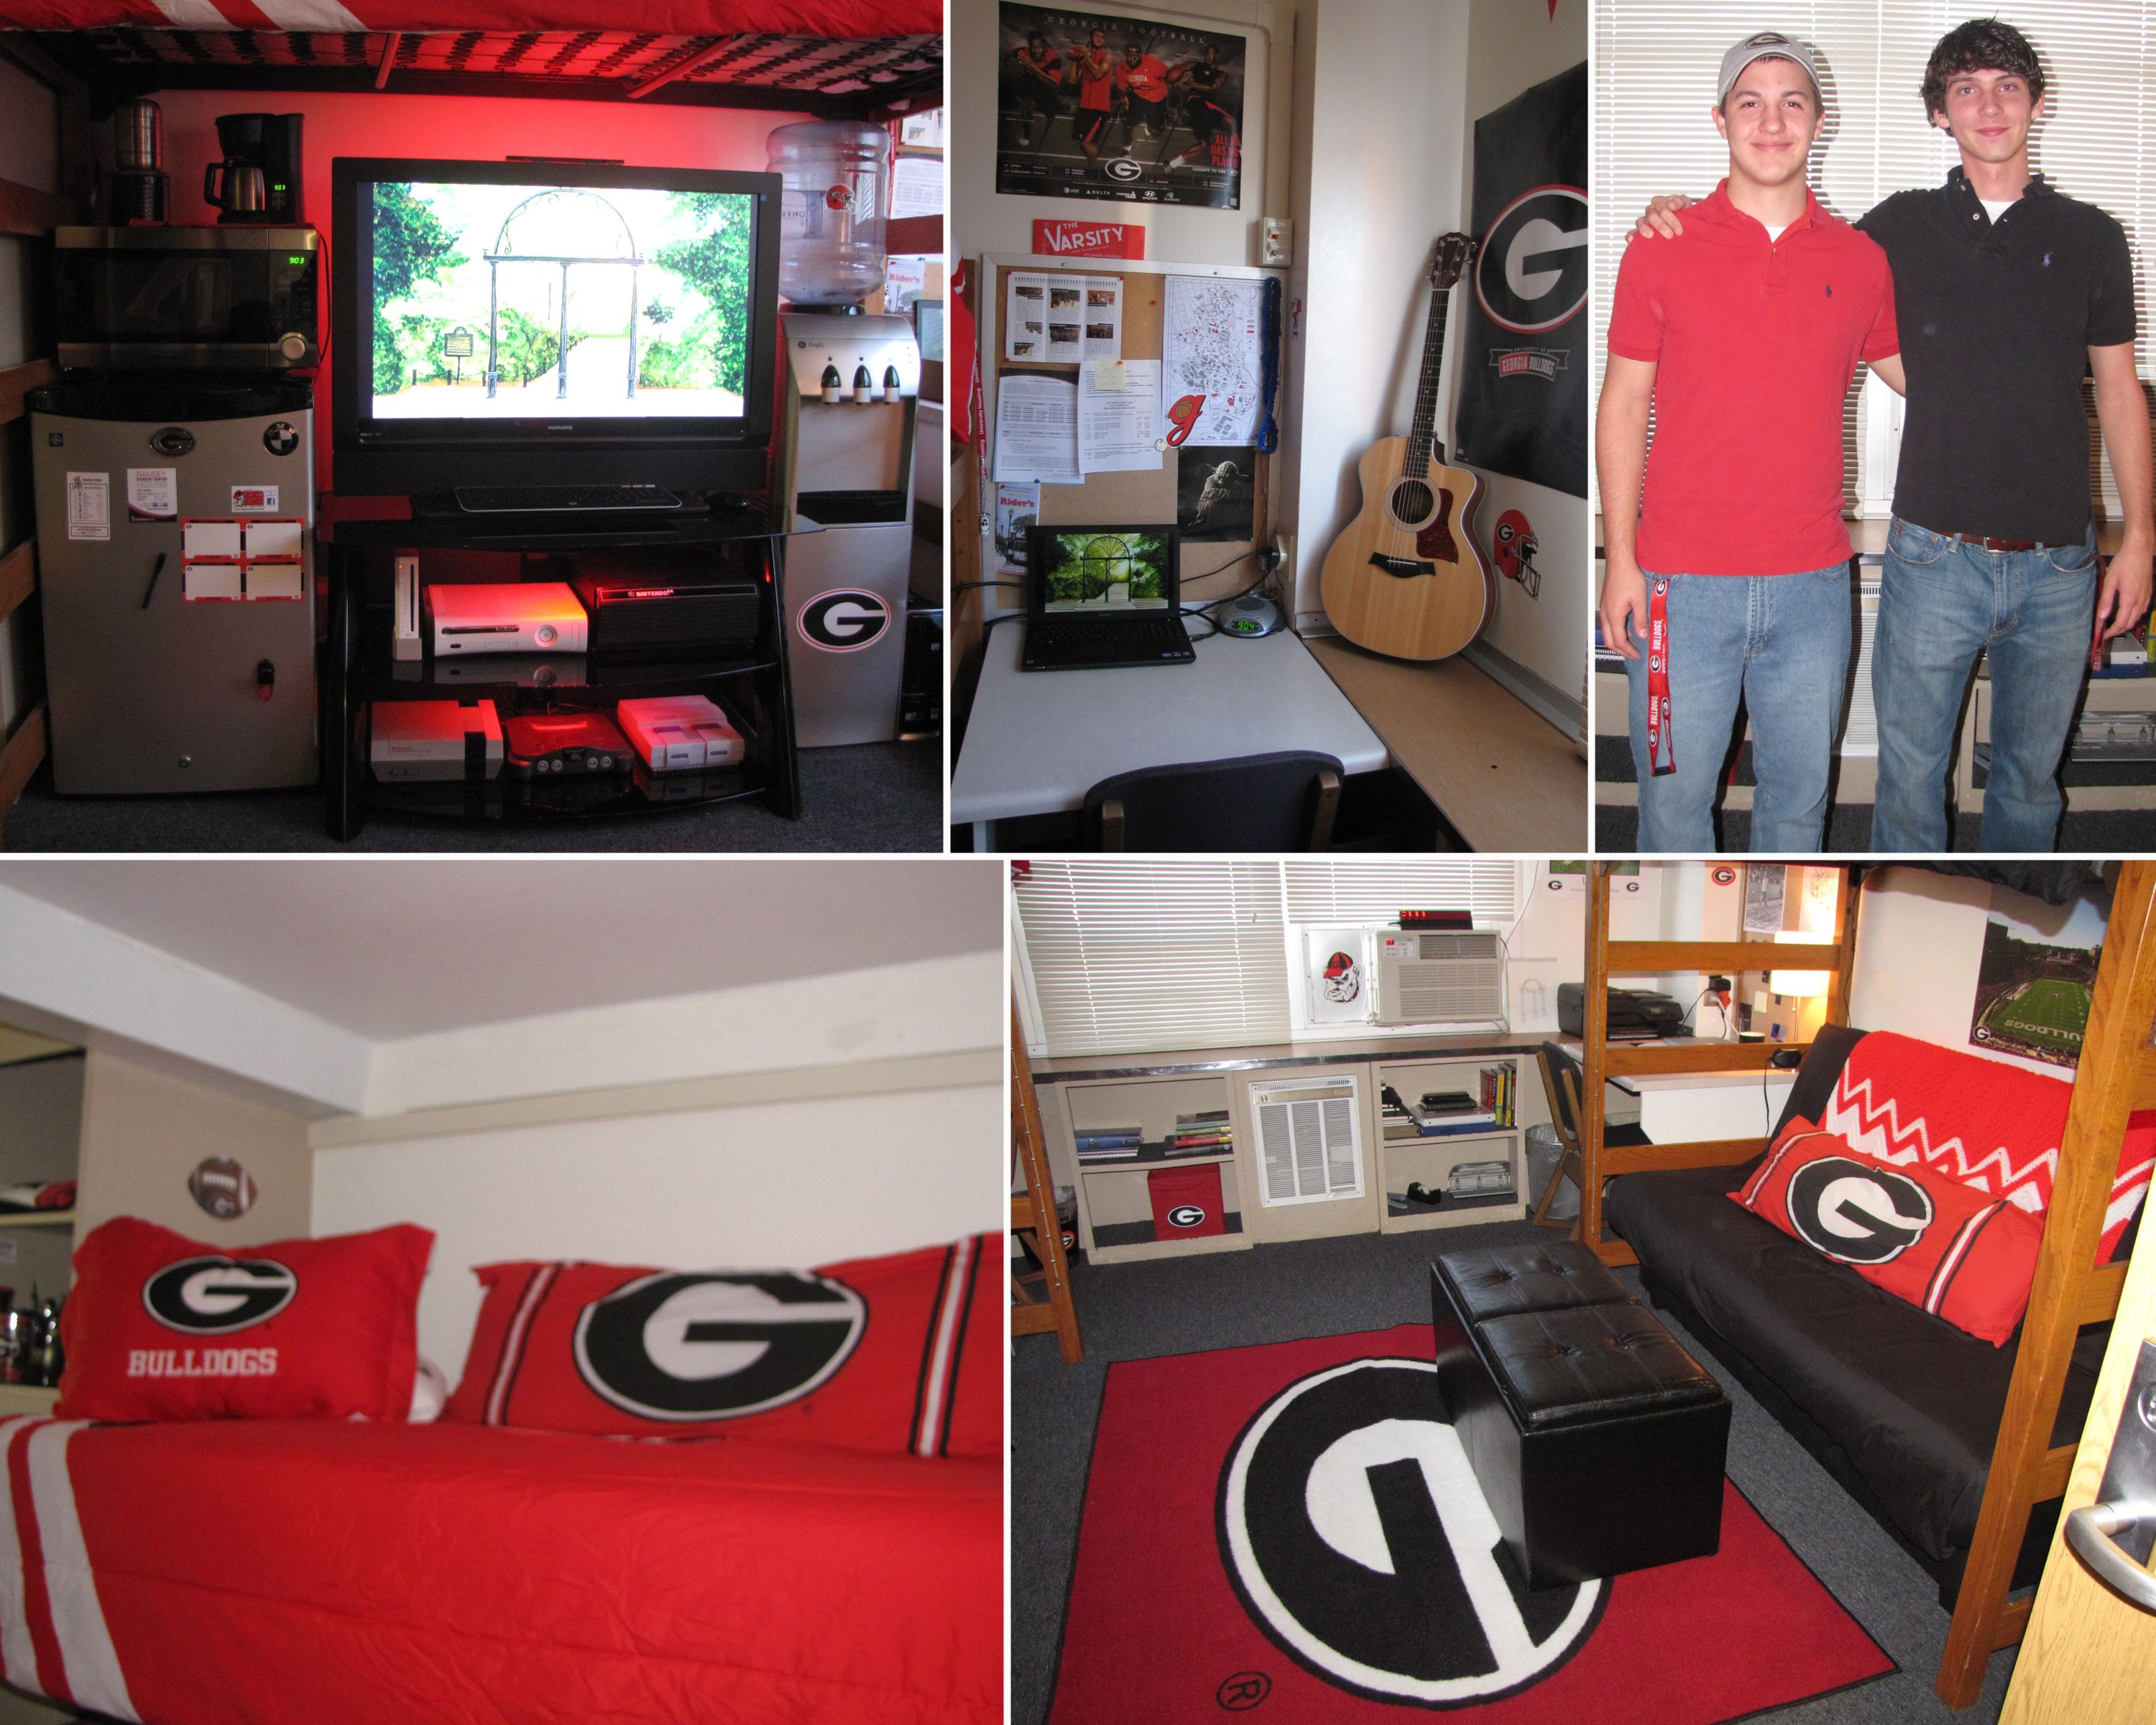 48 best dorm room ideas images on pinterest | college life, dorm